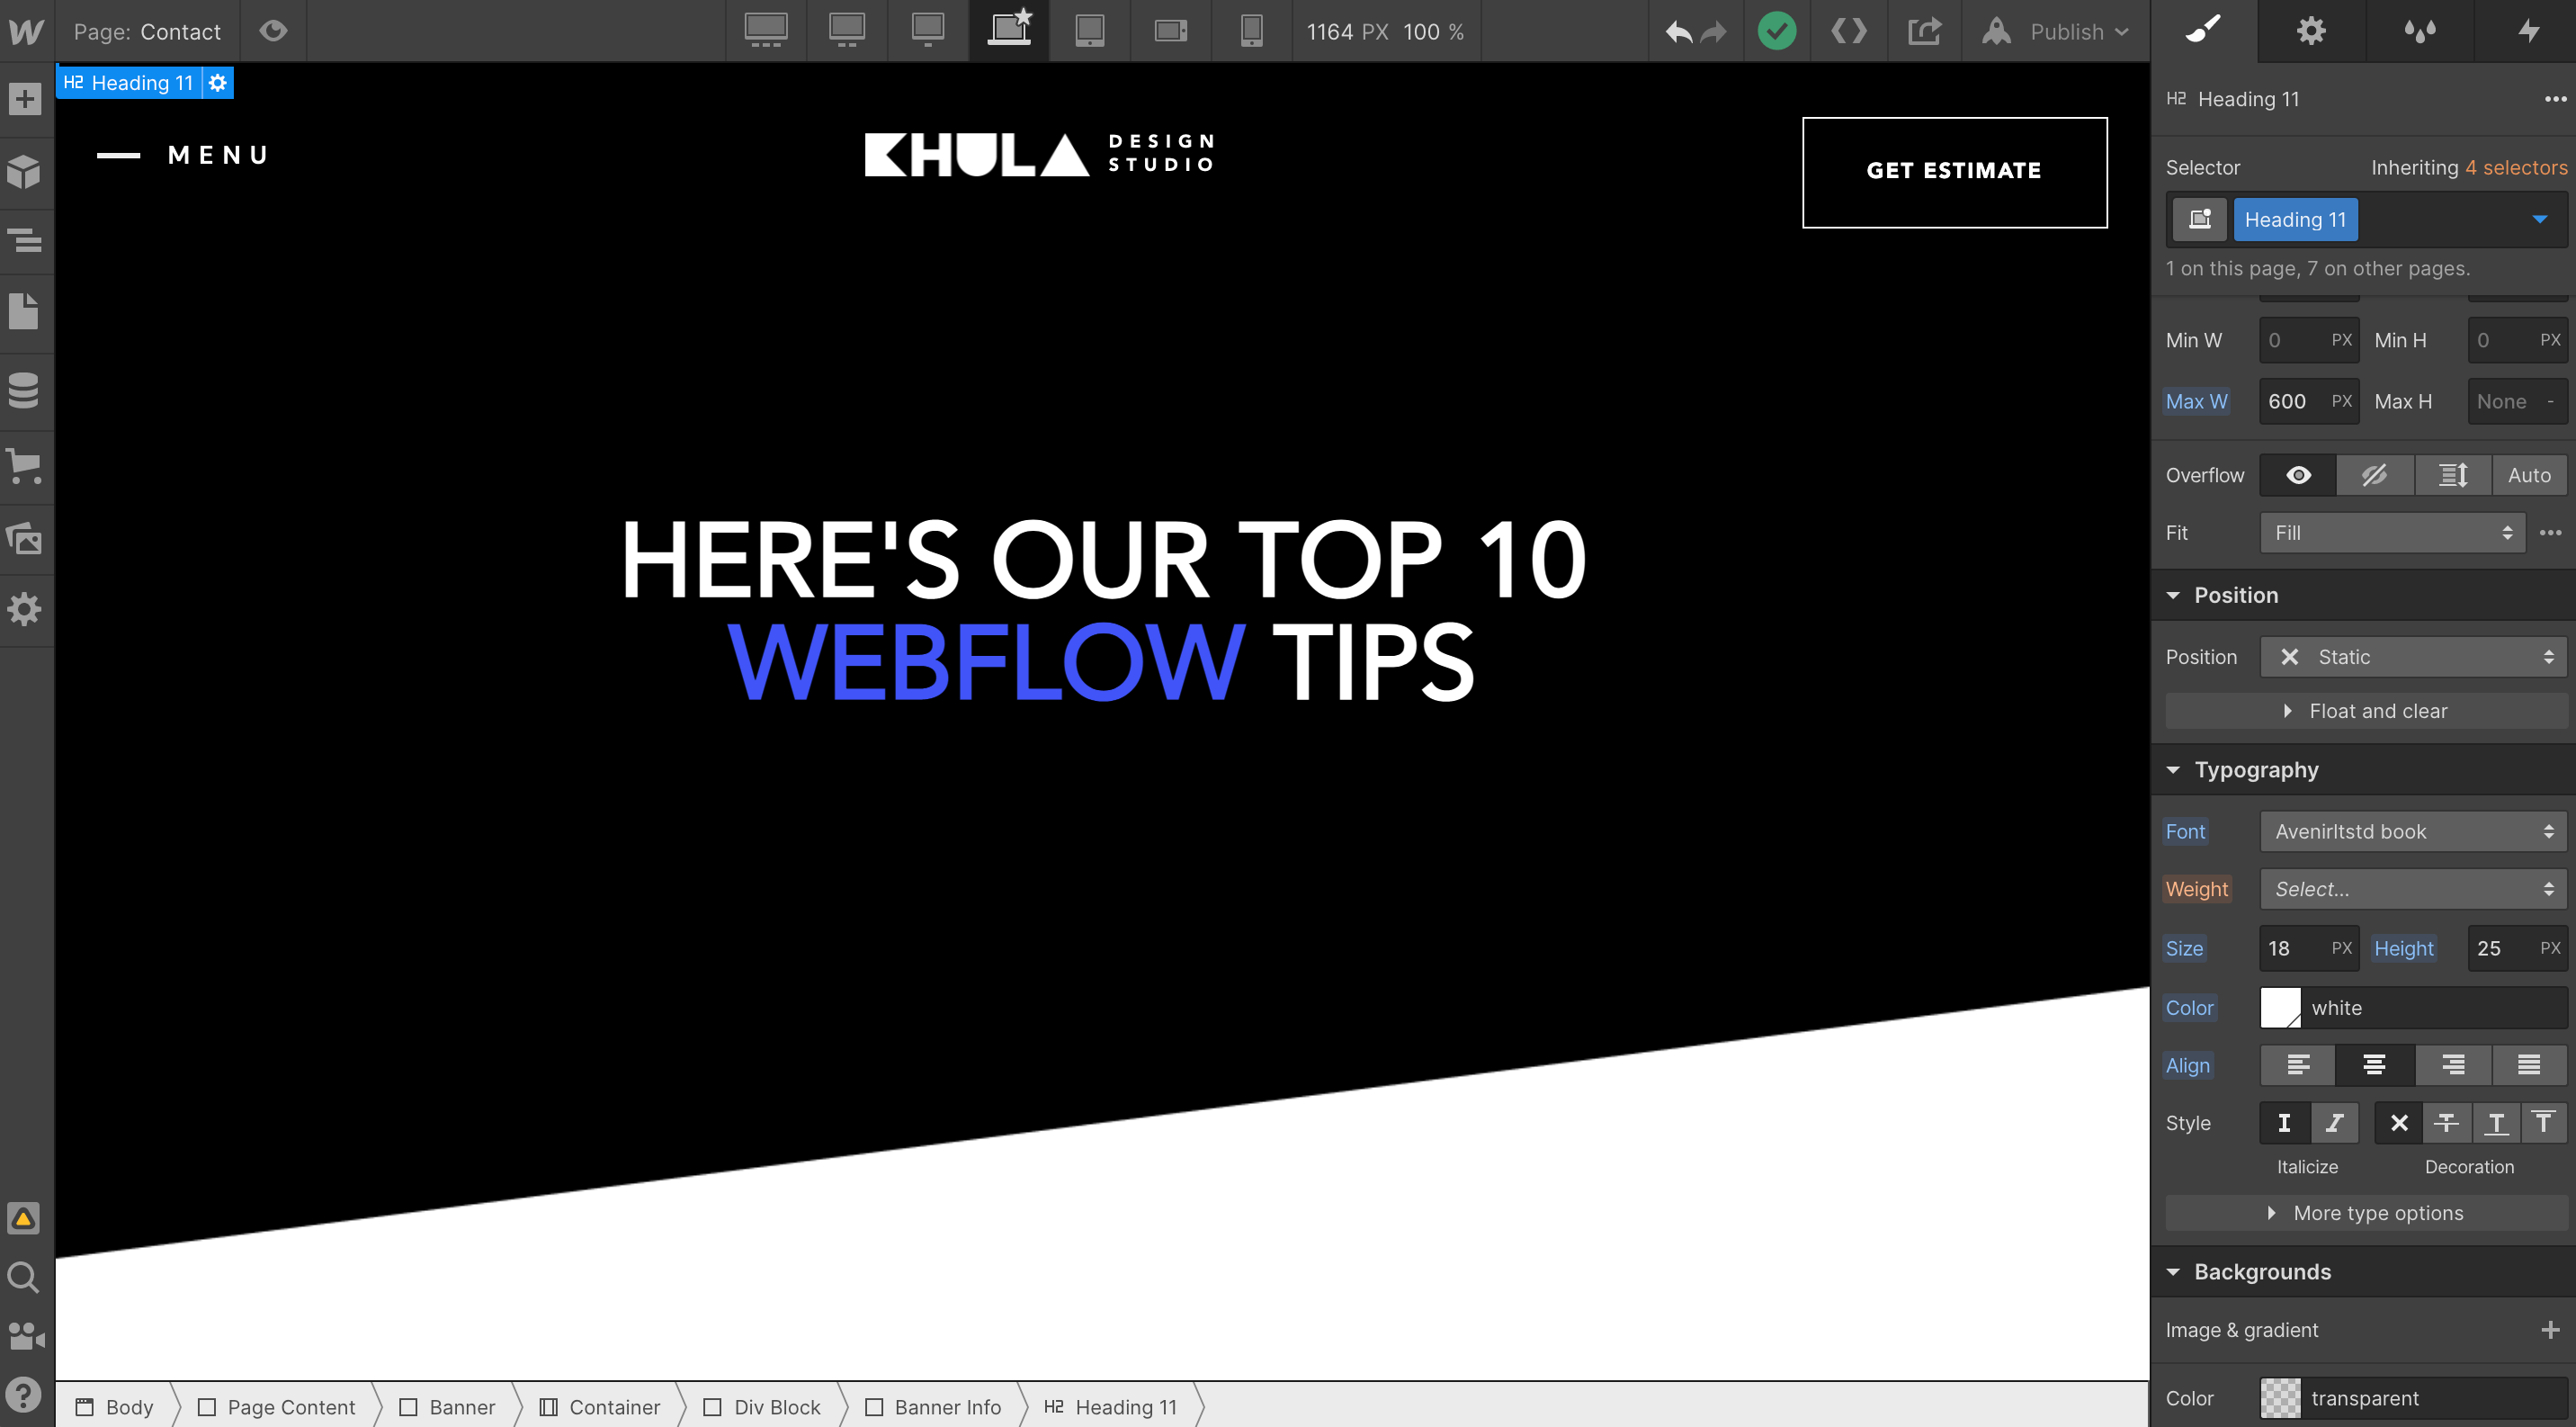 Top 10 Webflow Tips For The Everyday Solopreneur